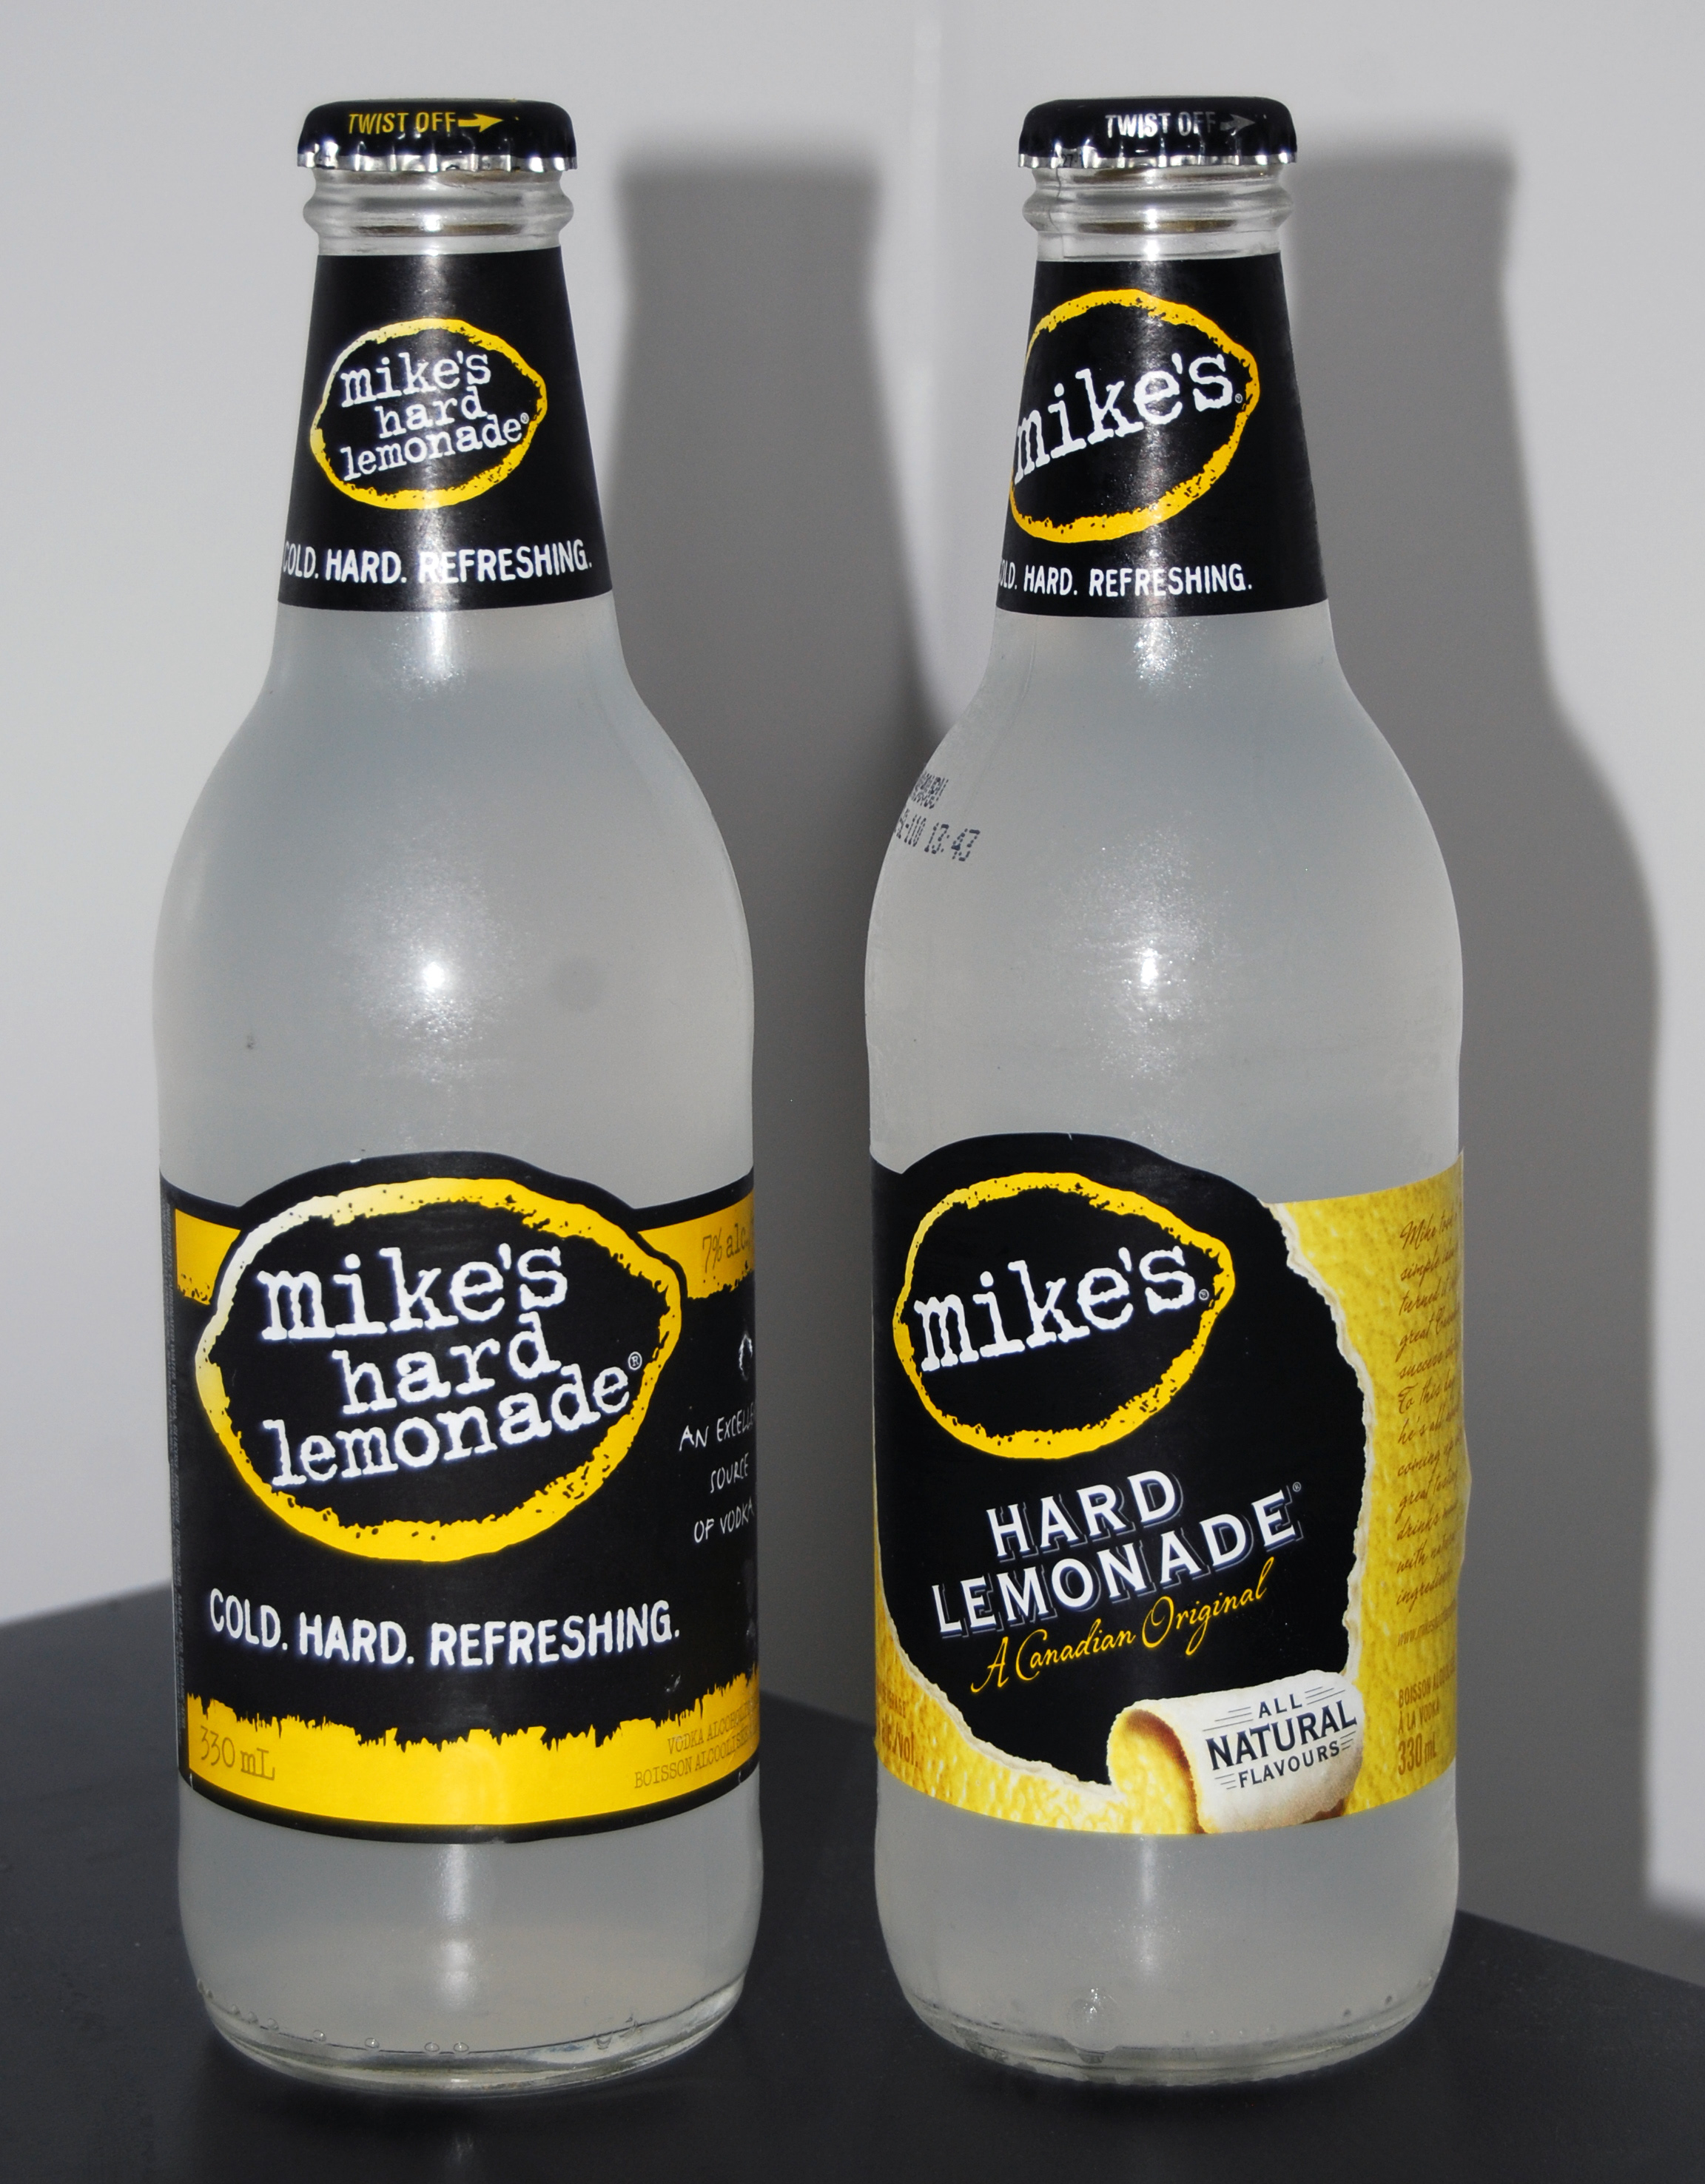 File Mikes Hard Lemonade Bottle 330ml Canada Old7 And New